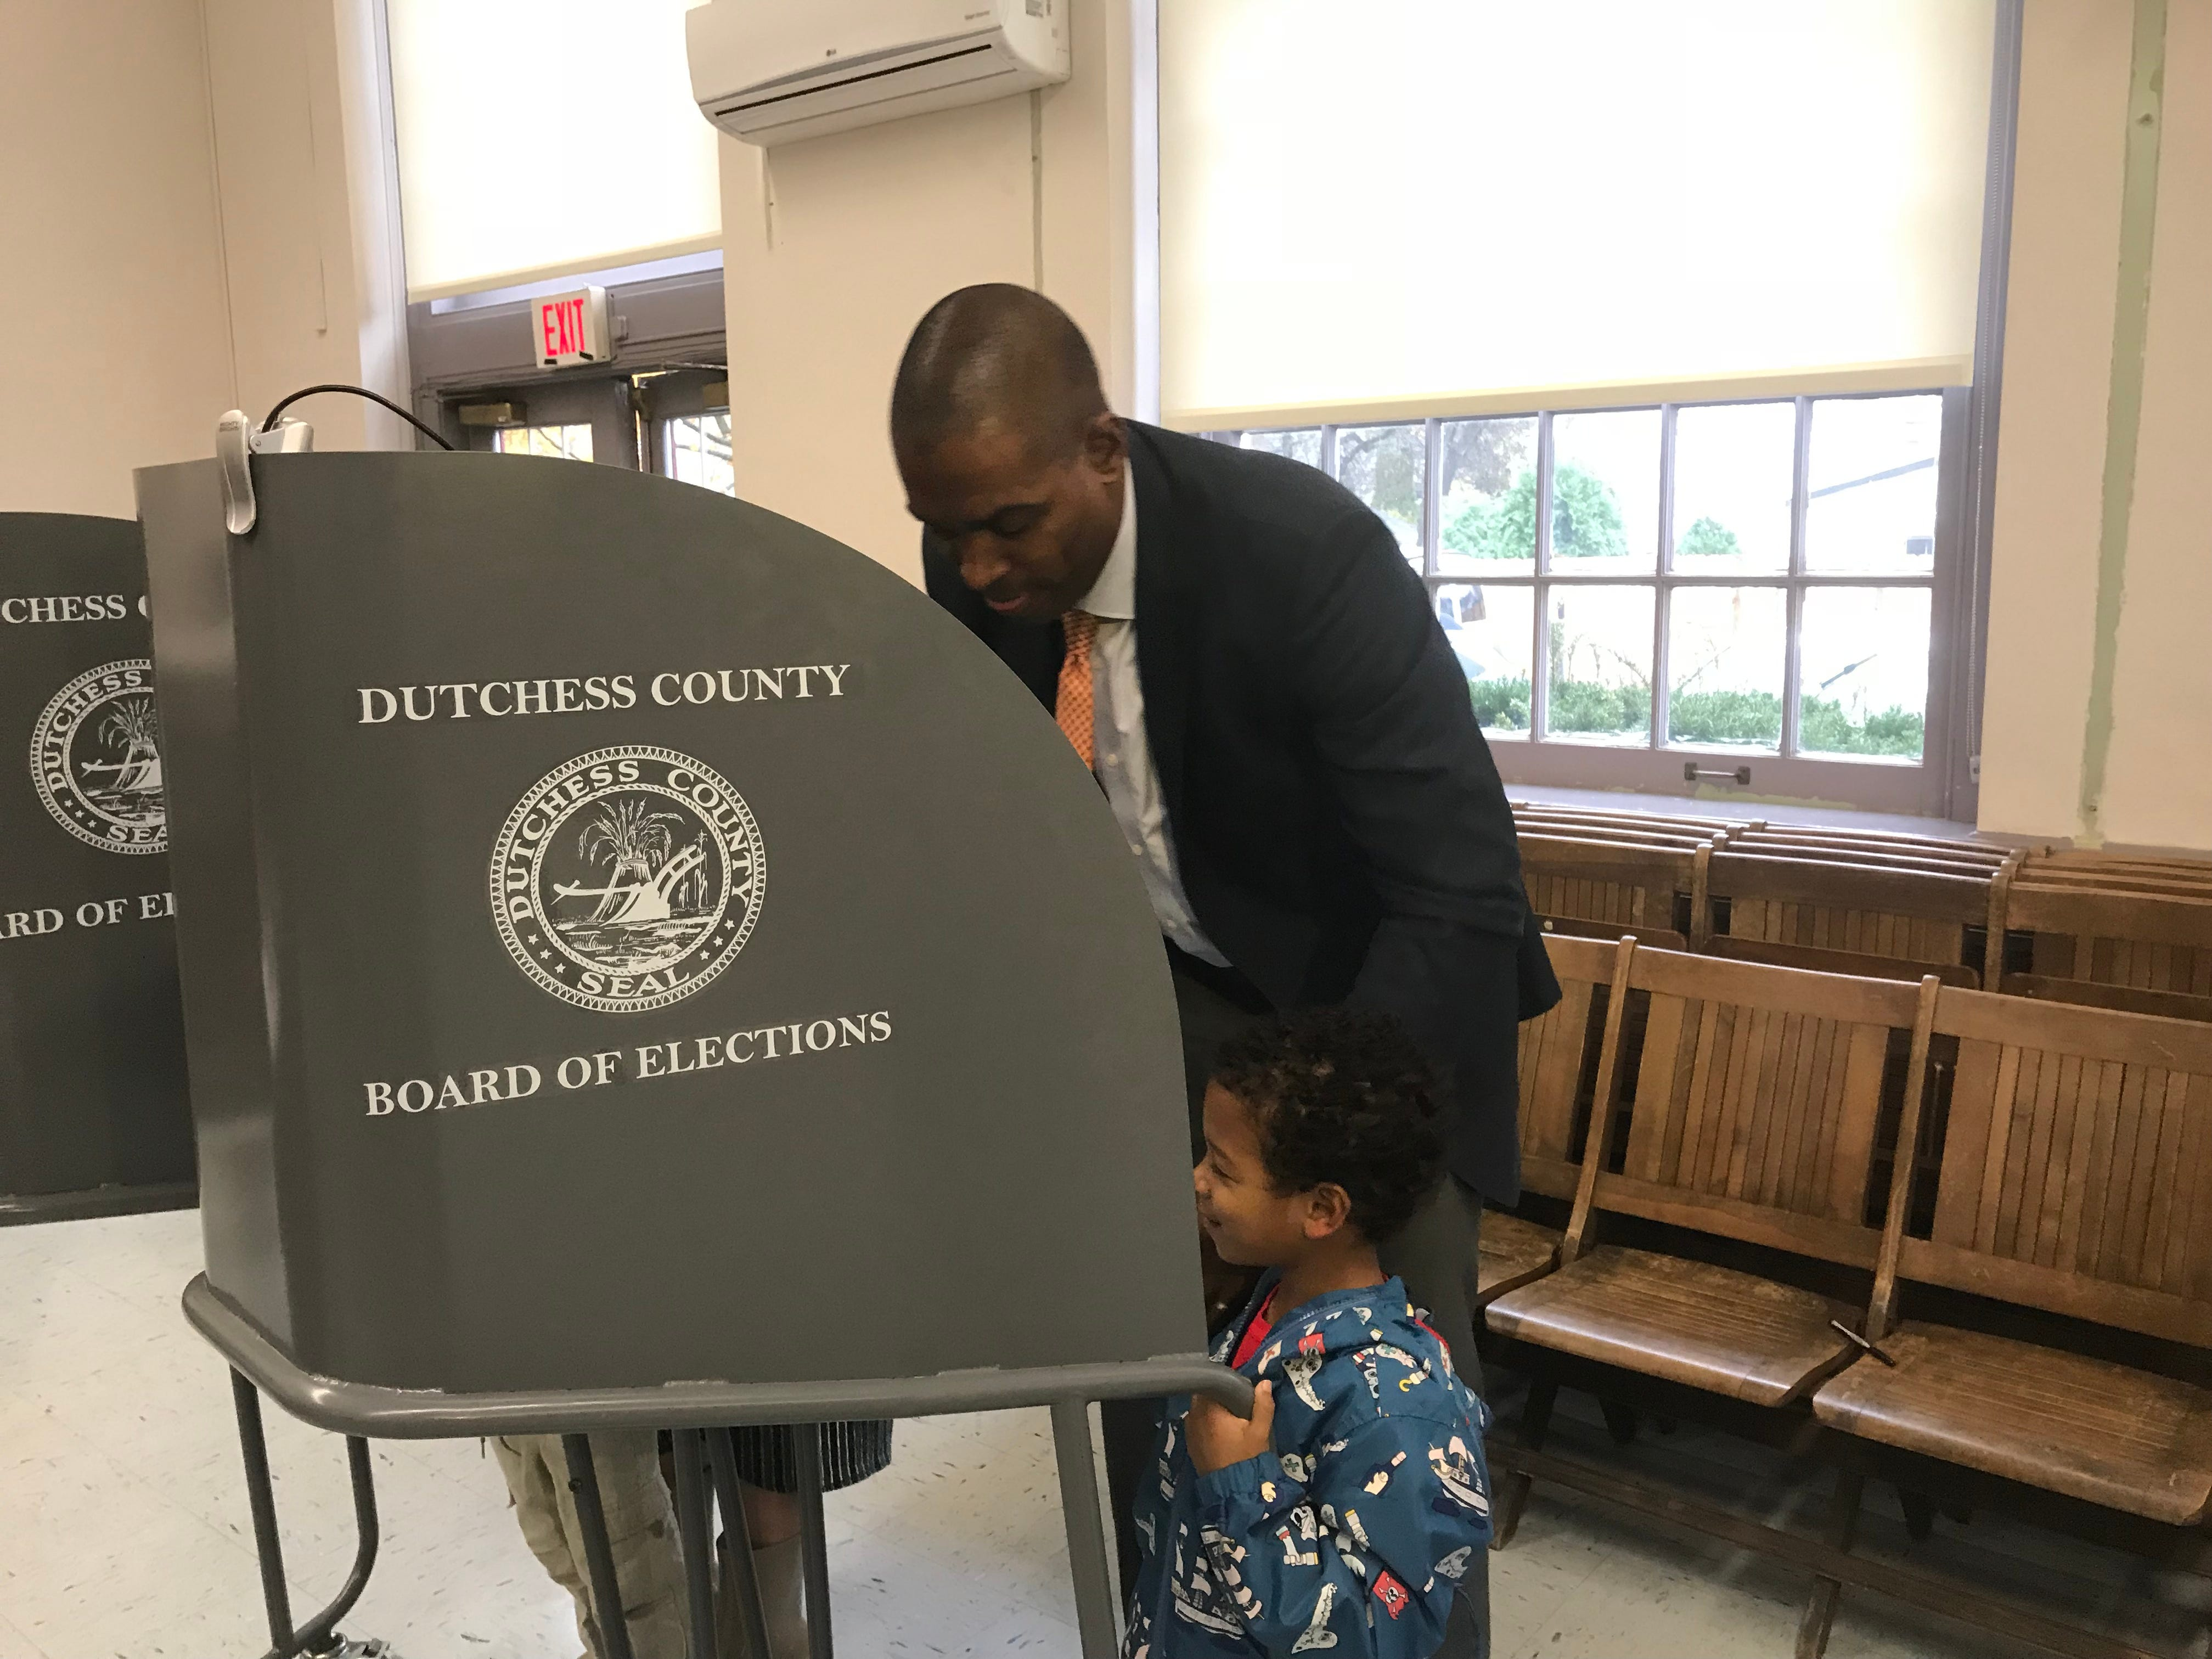 Antonio Delgado of Rhinebeck, Republican candidate for the 19th Congressional District, votes at Rhinebeck Town Hall Tuesday morning with his 5-year-old son.